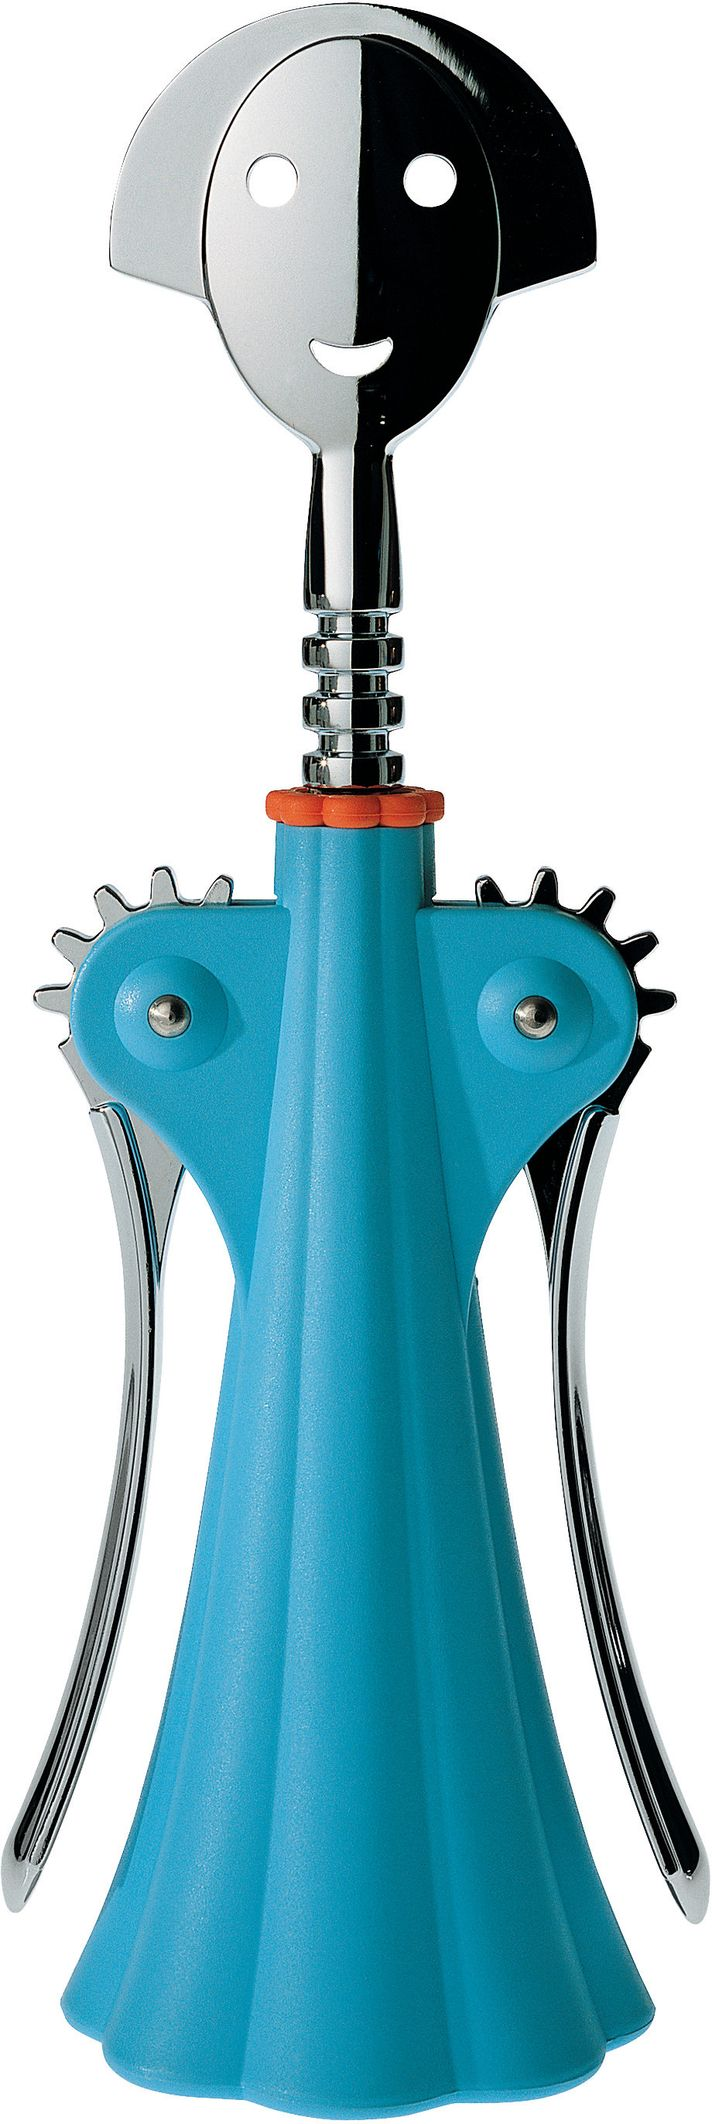 Image of Alessi Anna G Corkscrew, Blue